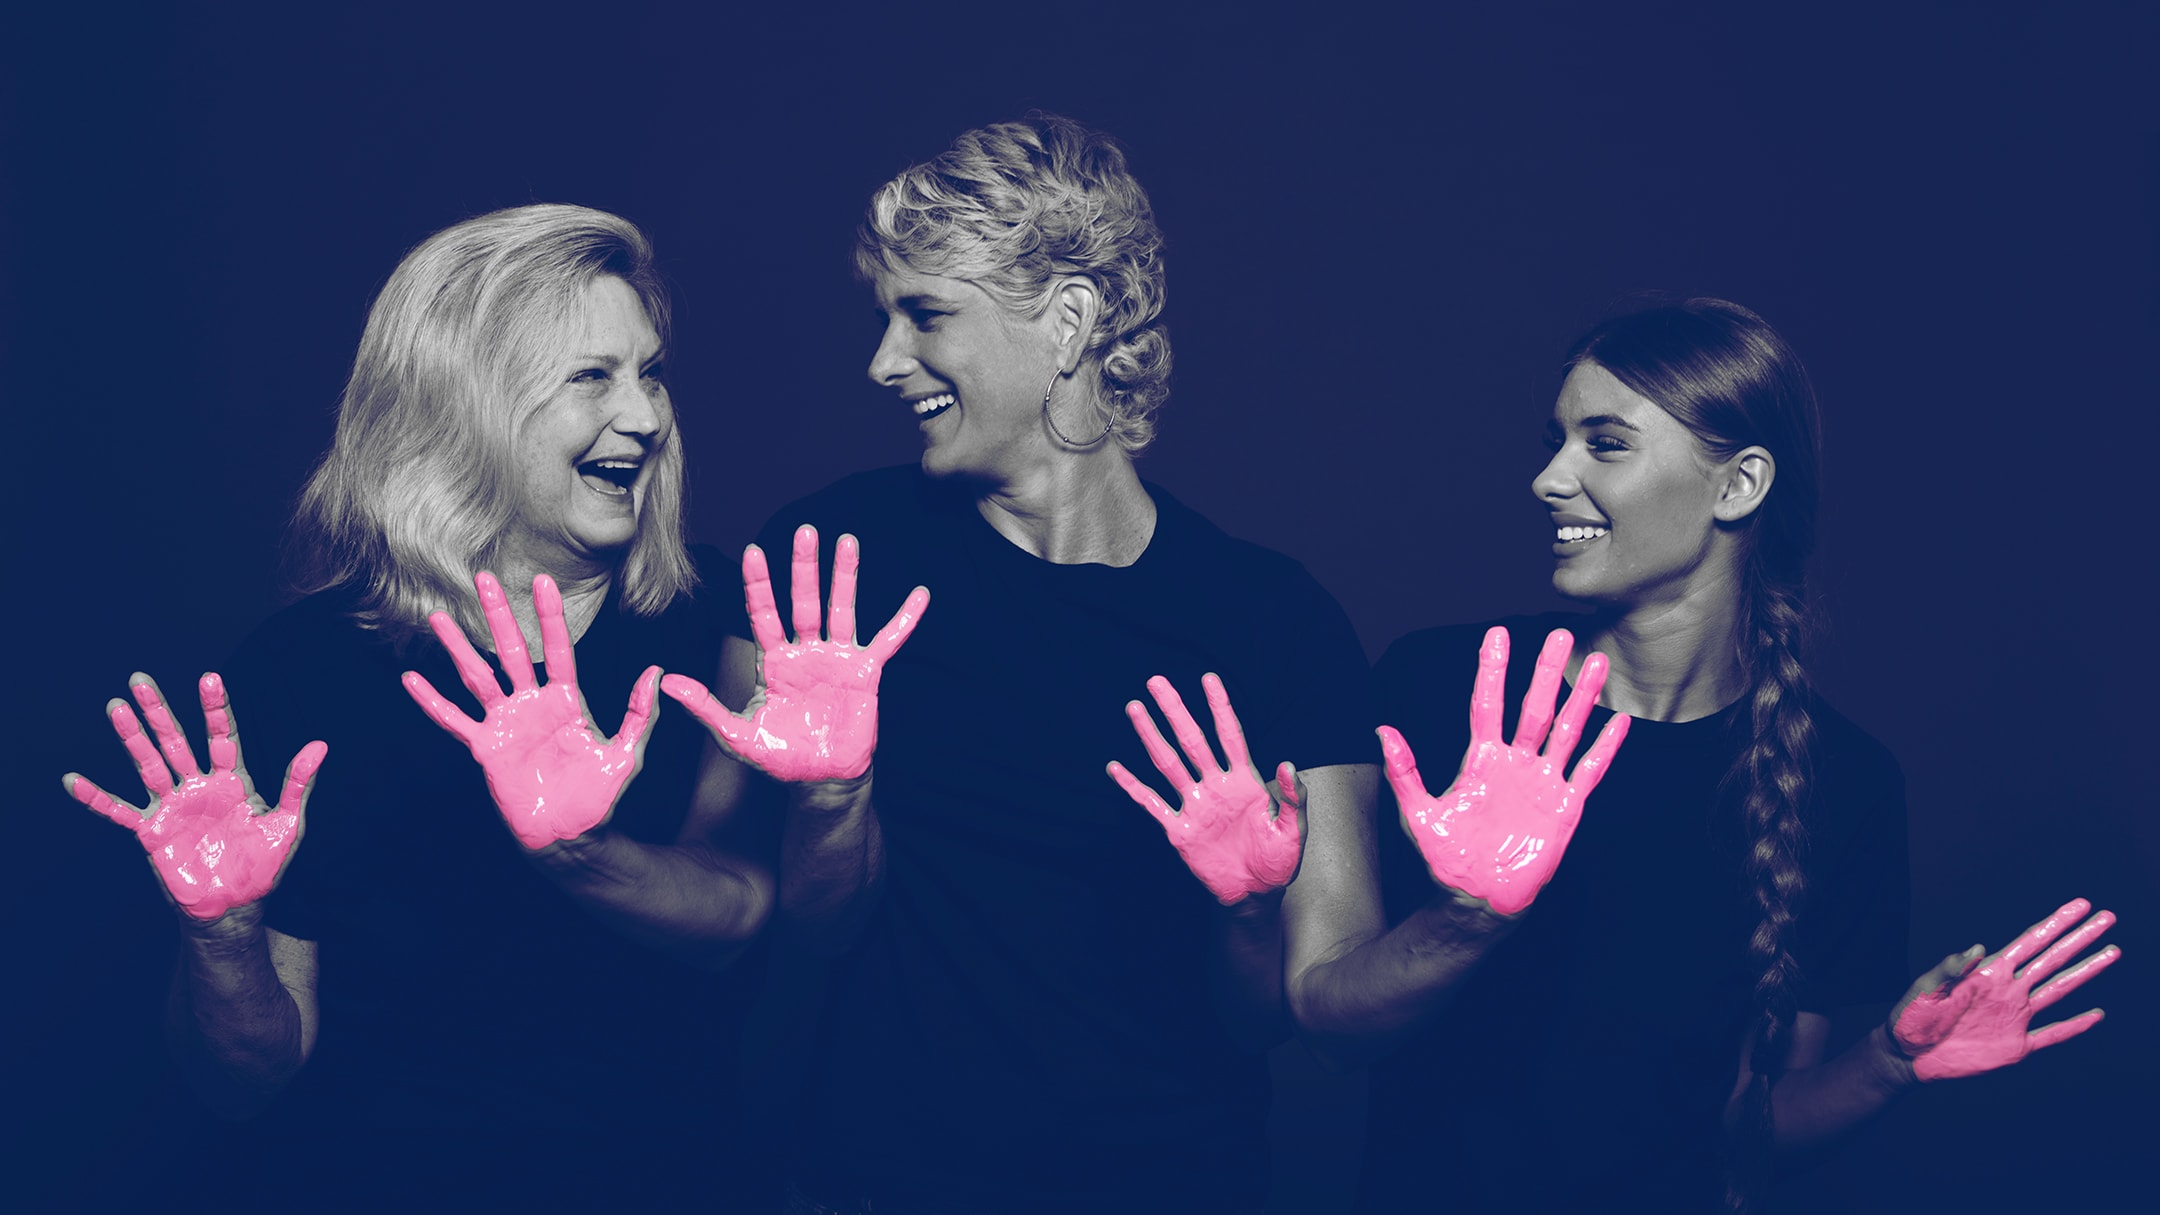 A breast cancer survivor and her family posing for the in our hands campaign with pink paint on their hands